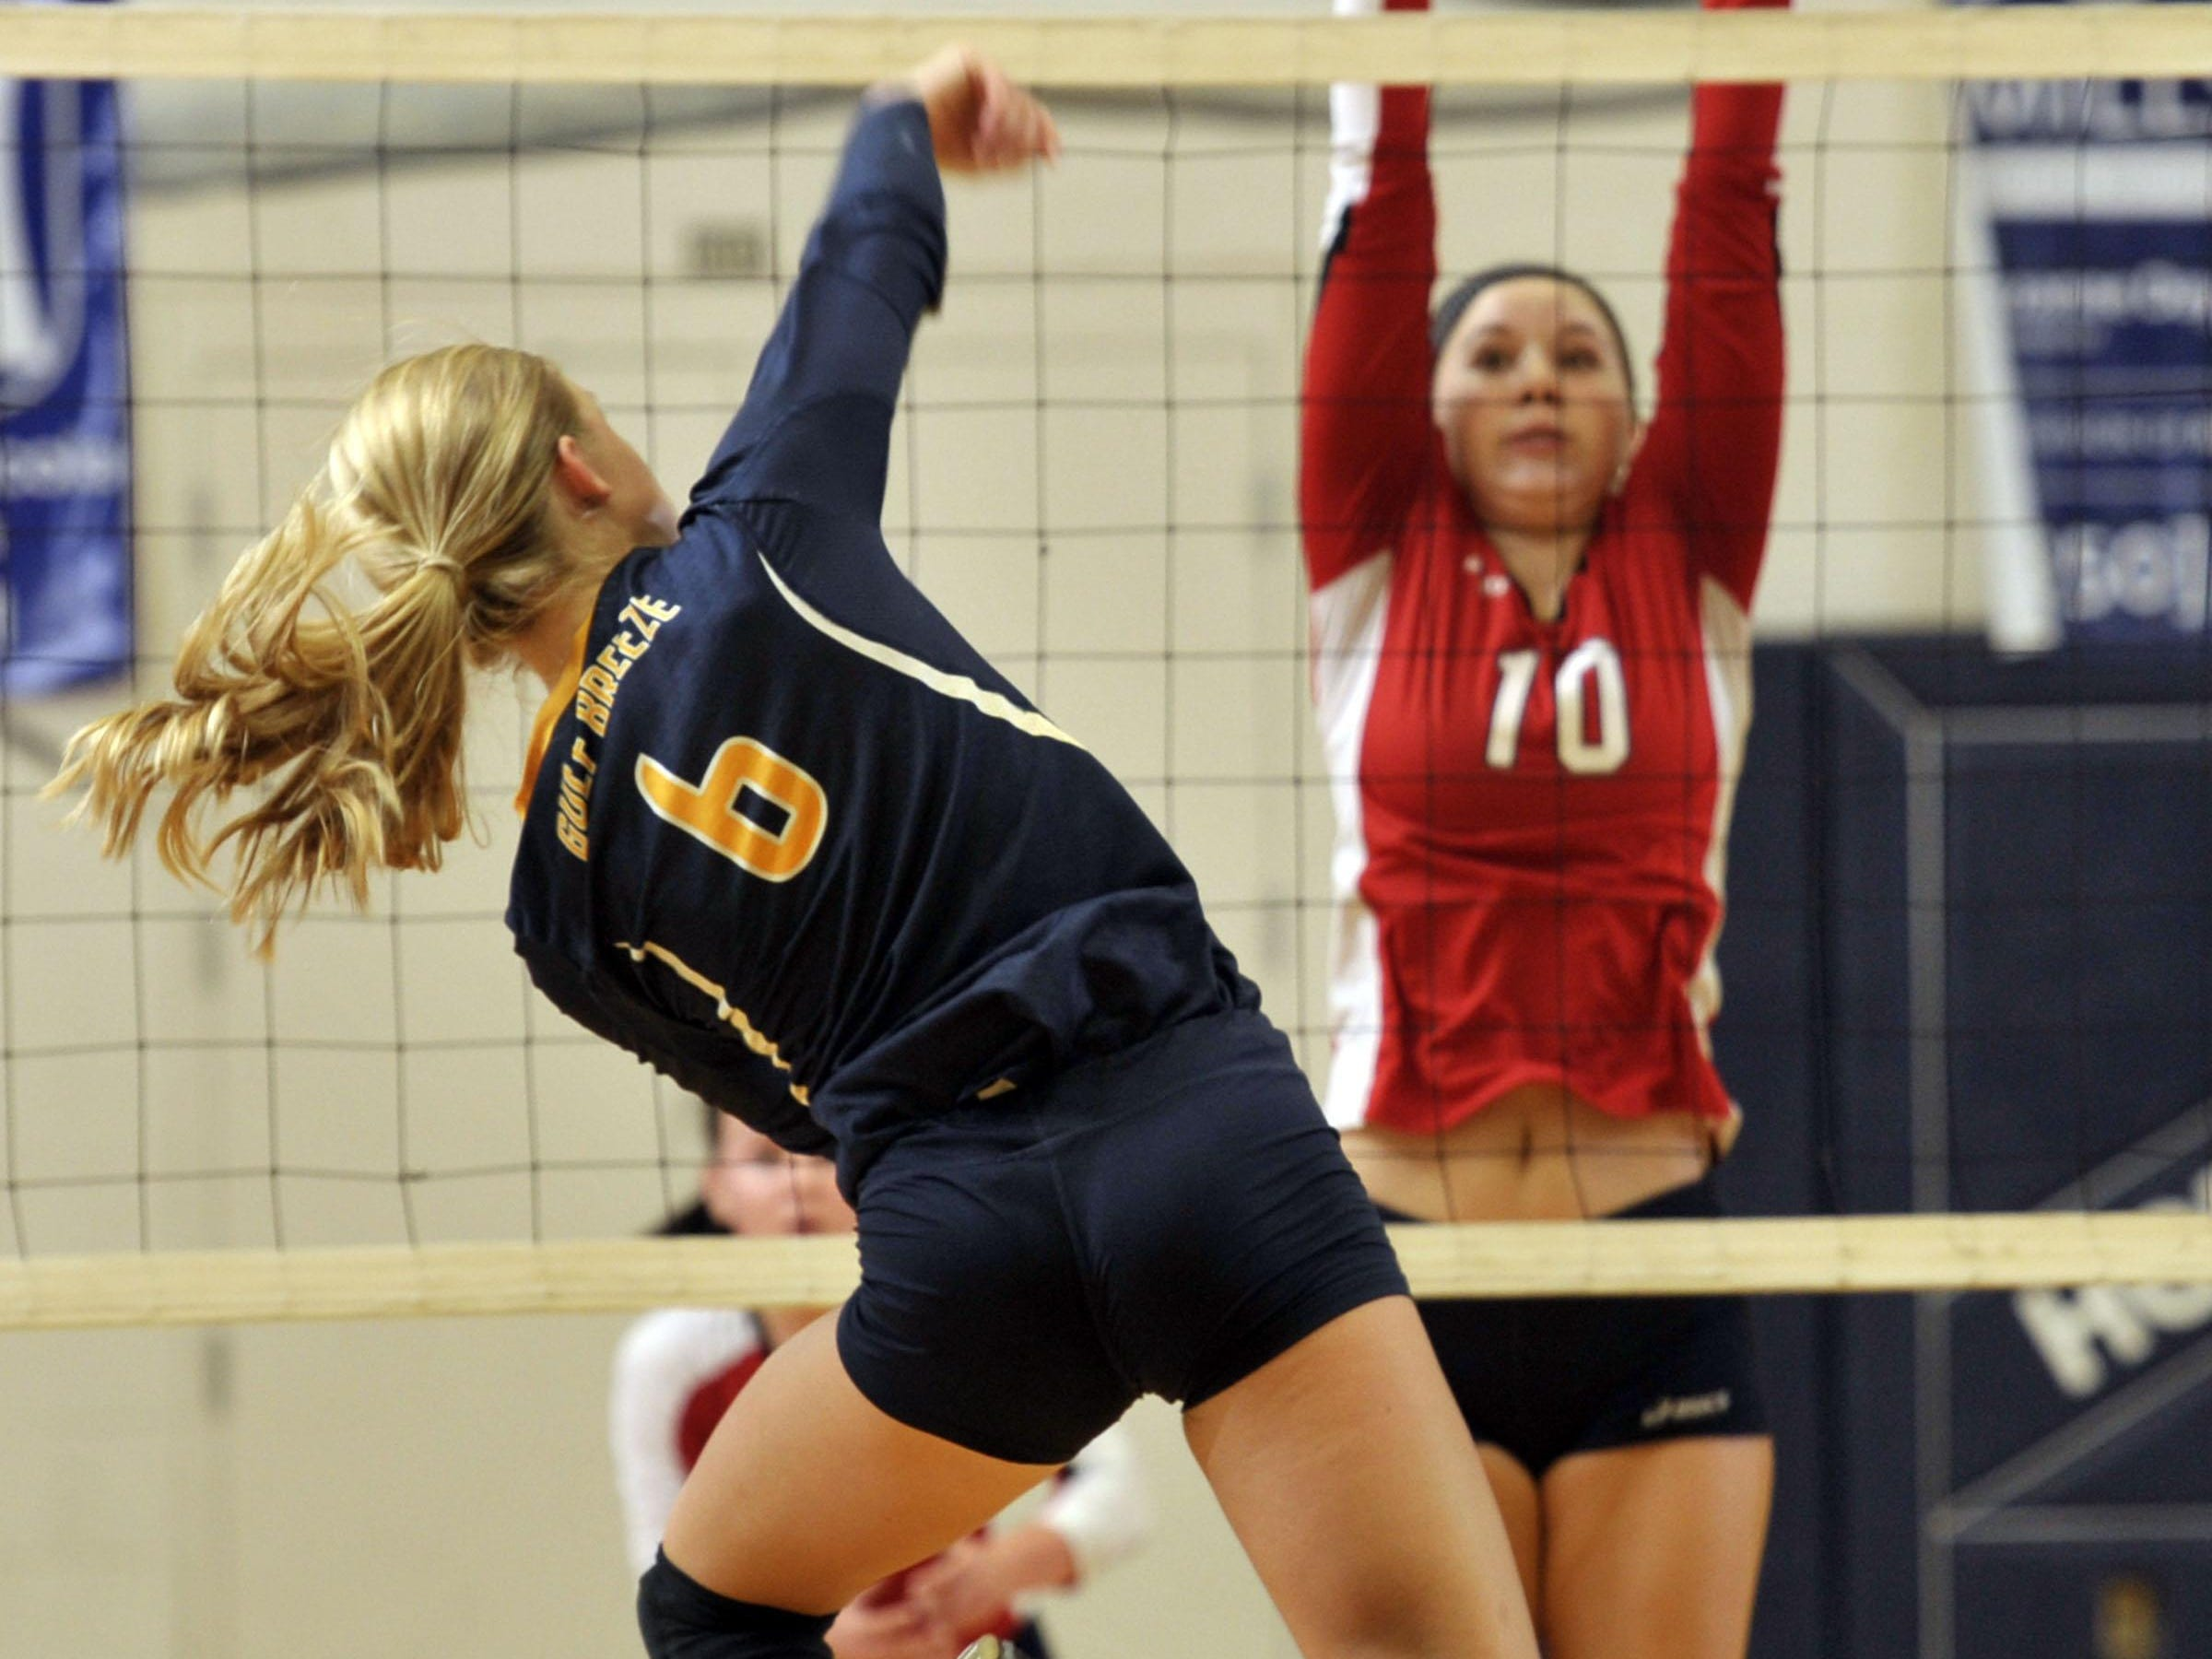 Olivia Hepworth of the Gulf Breeze Dolphins drives the ball past defending Ft. Walton Beach Vikings player No. 10, Savannah Bailey, during their region 1-6A quarterfinal game Wednesday night at Gulf Breeze High. The Dolphins won in four games.